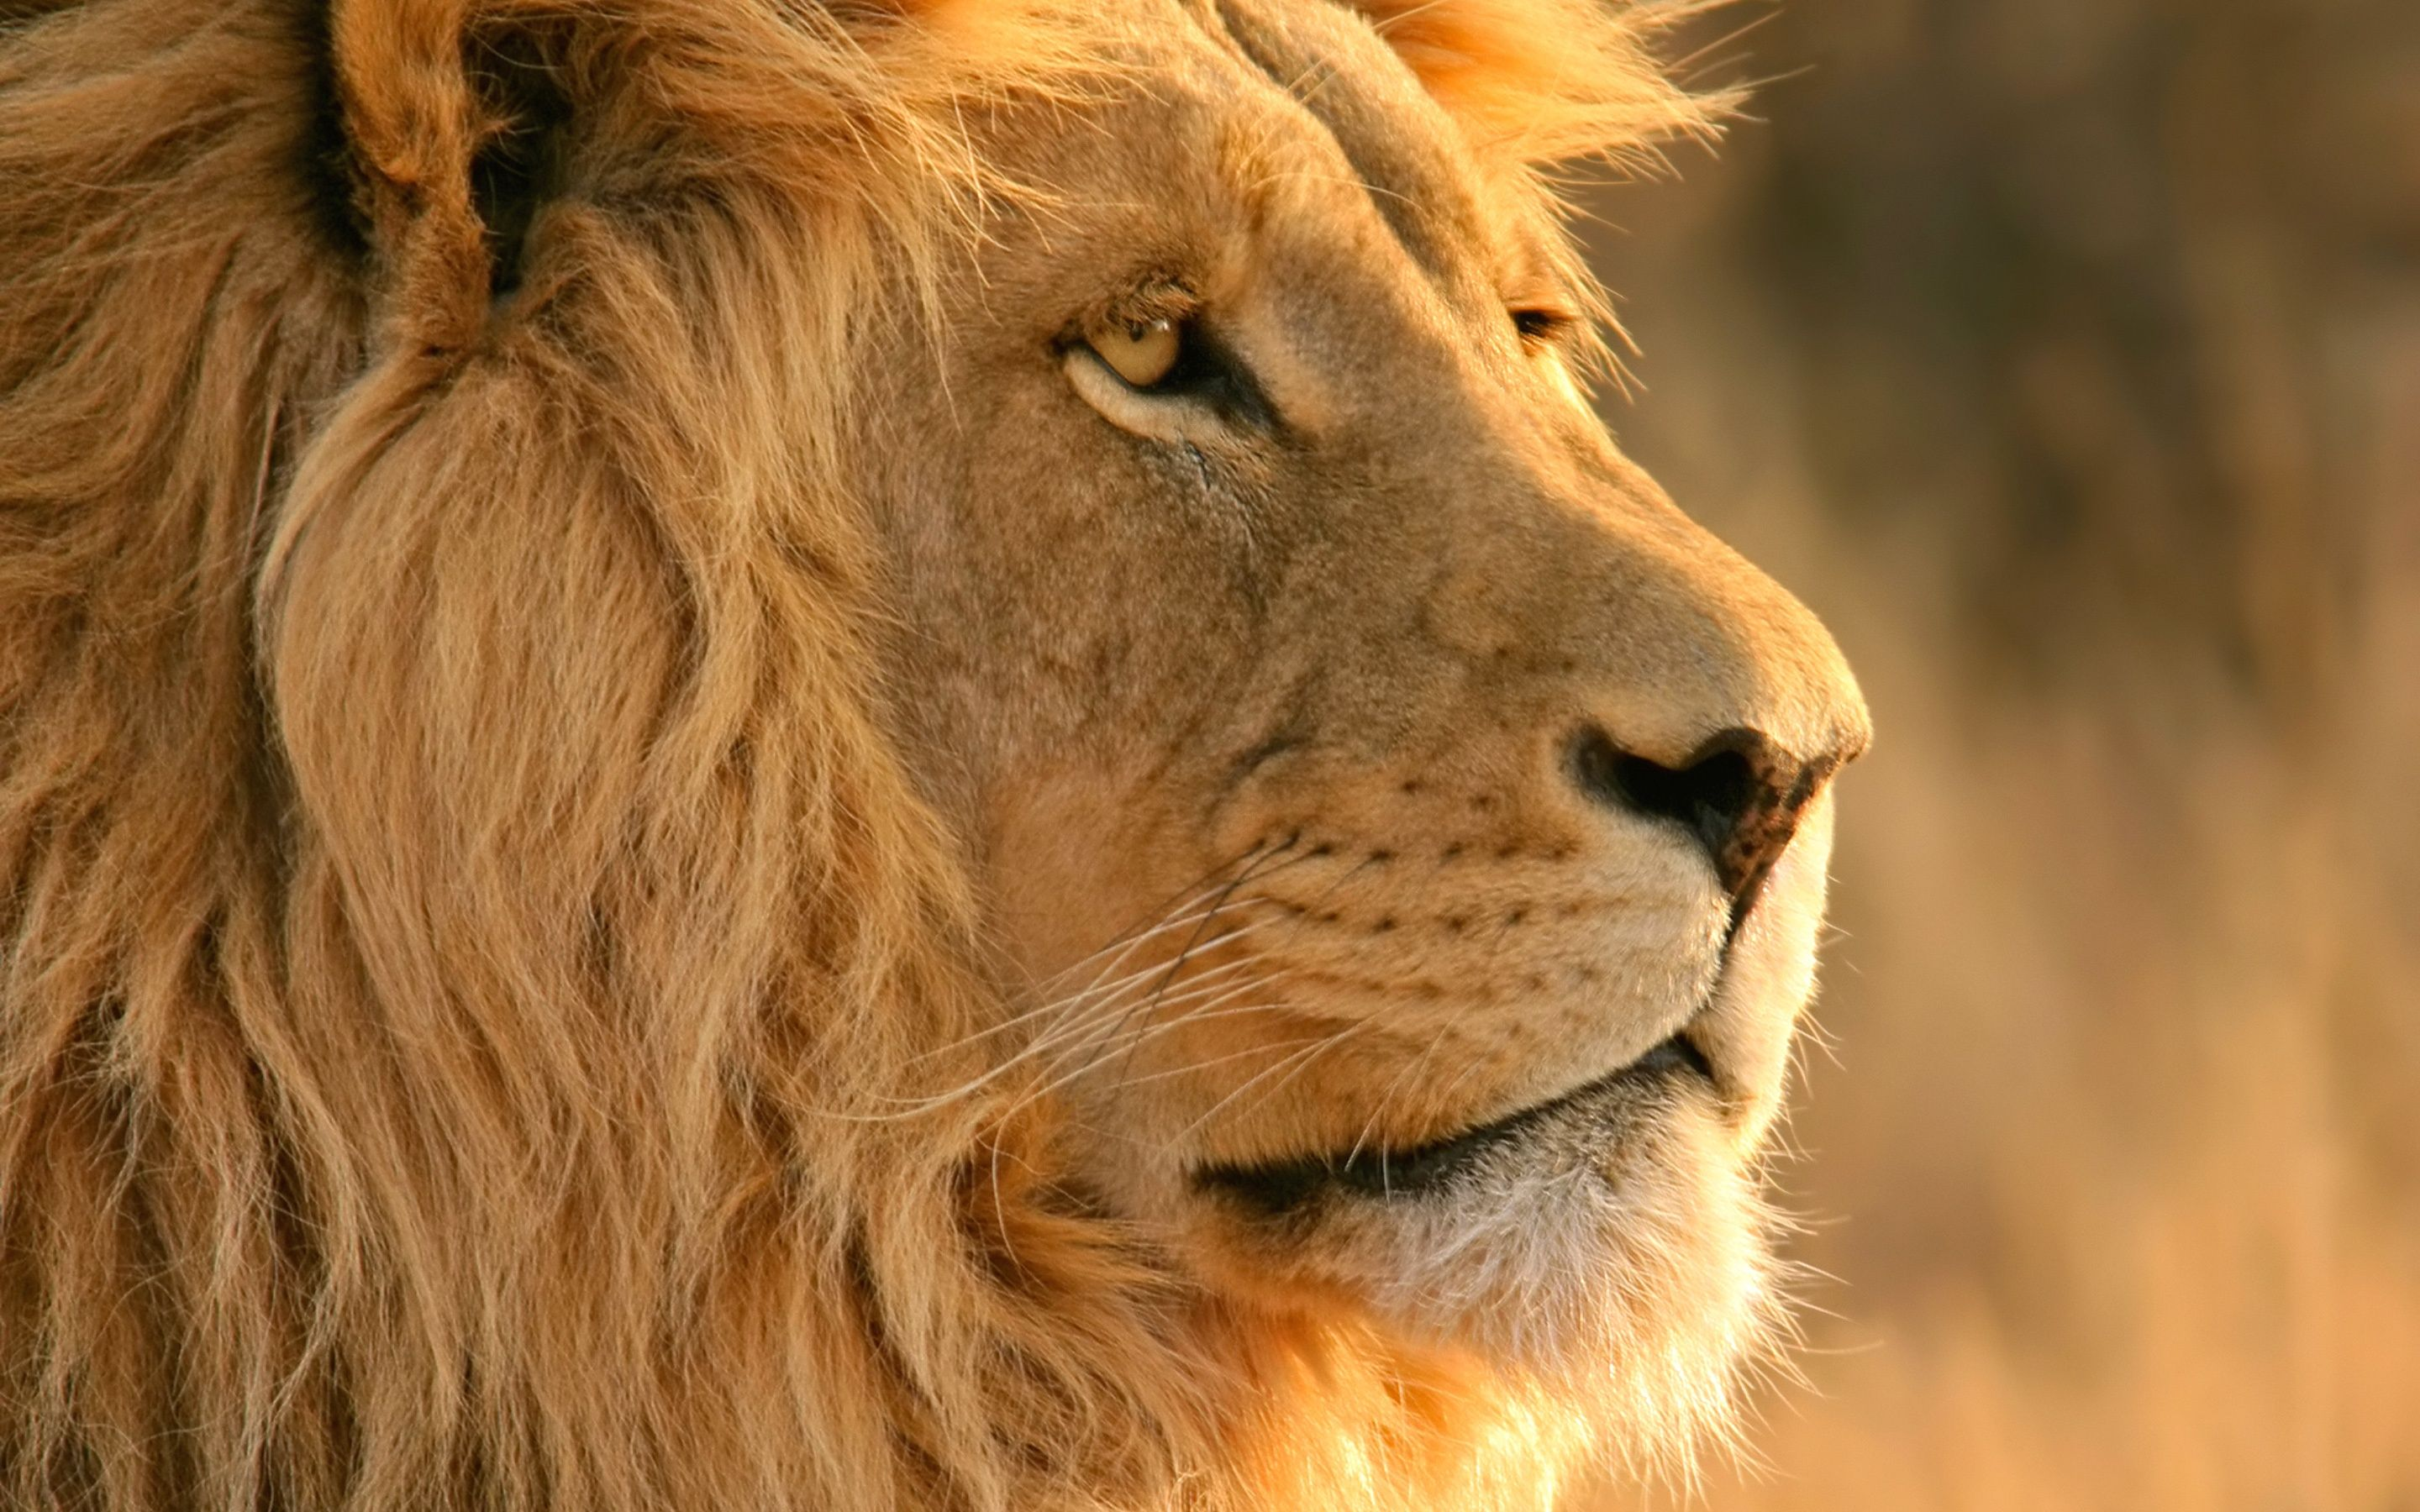 Lion Wallpapers Hd Wallpapers Laptop Wallpapers Others Lion